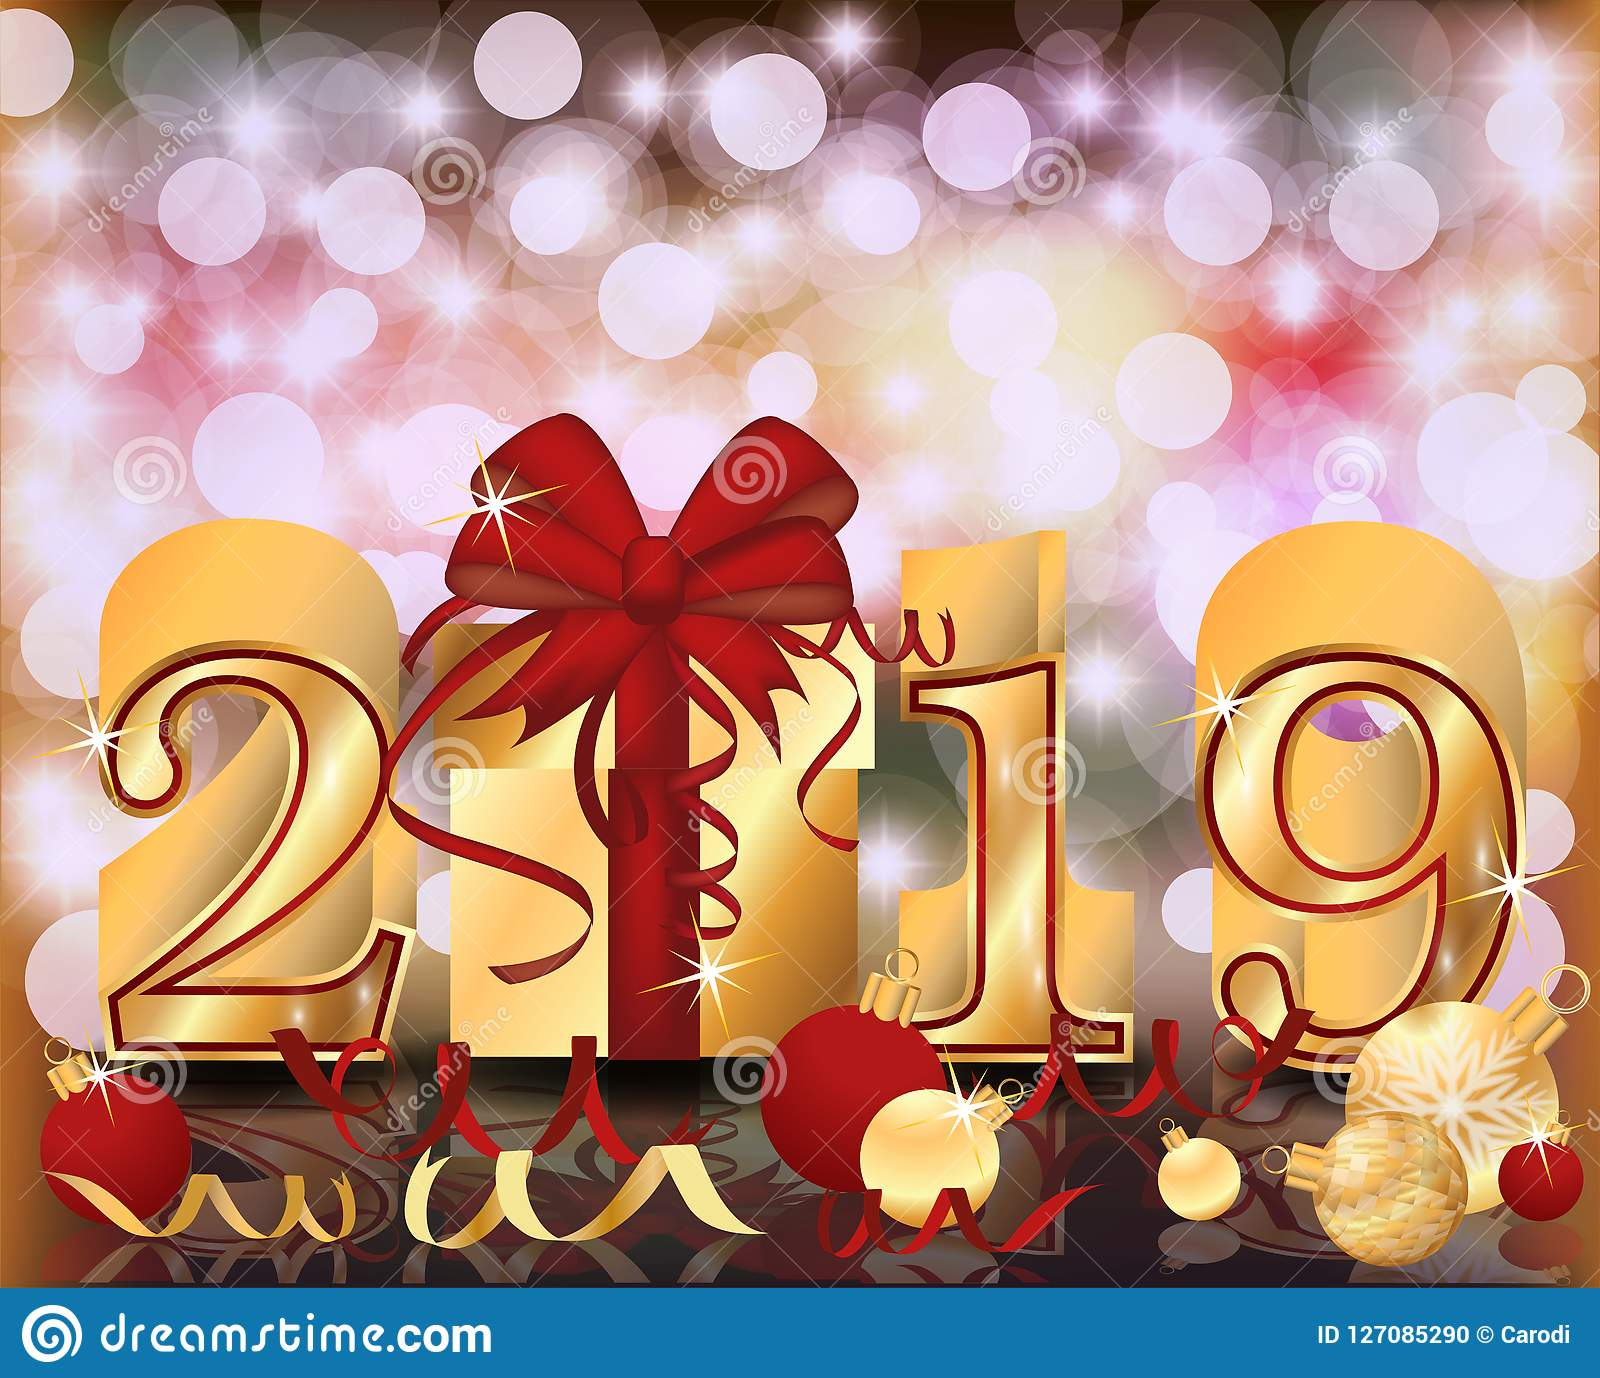 merry christmas happy 2019 new year golden banner vector